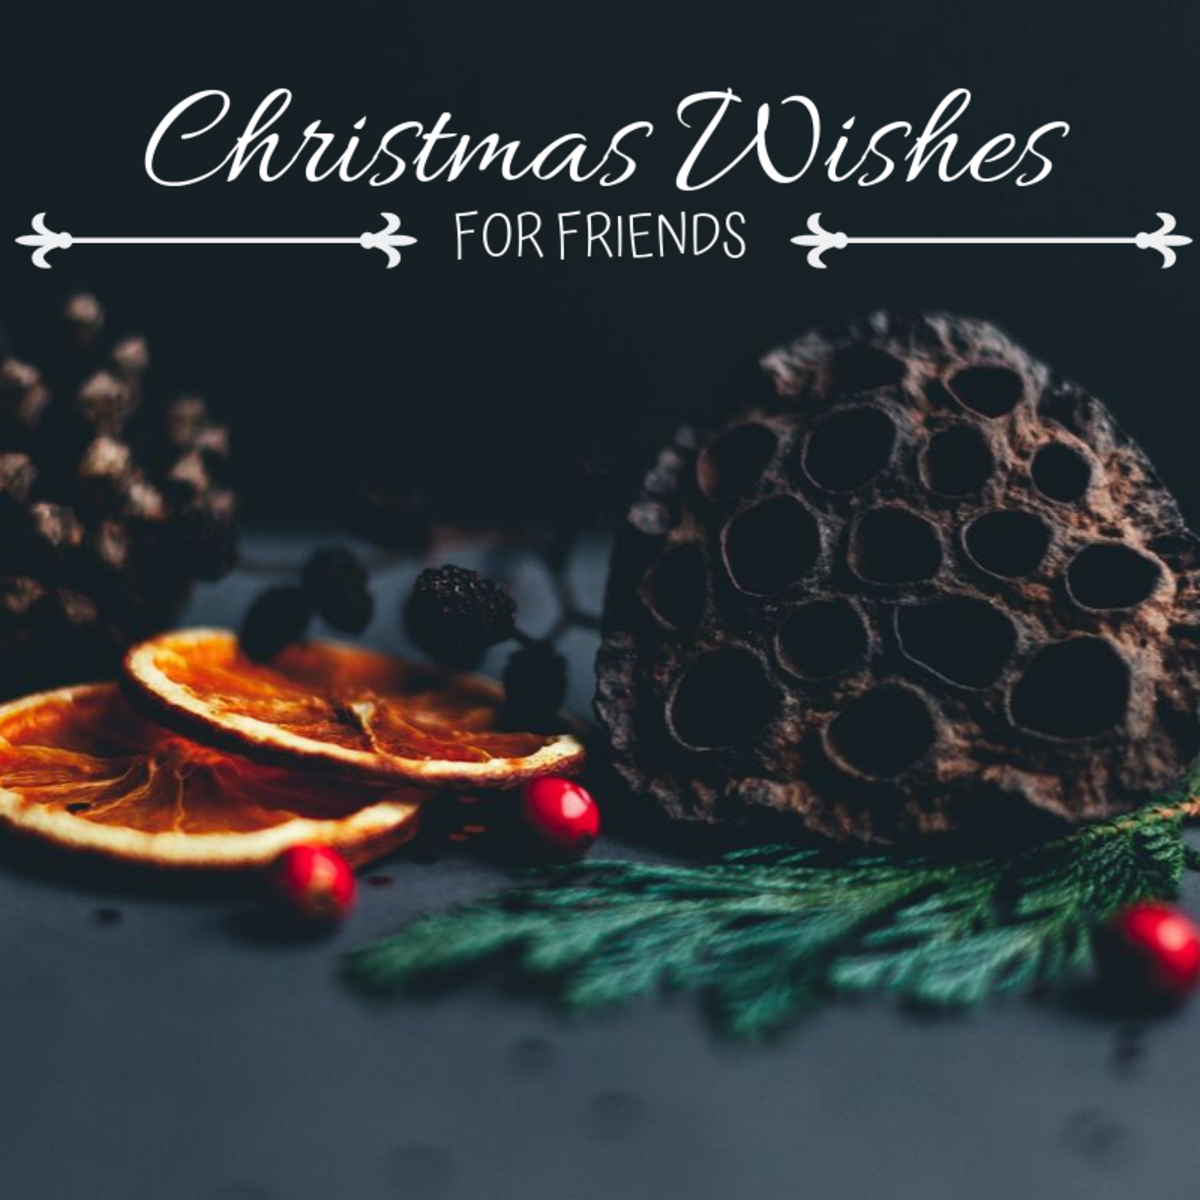 Most of us spend Christmas with family, so sending cards to the friends we can't be with during the holidays is a great way to remind them that they're family, too!